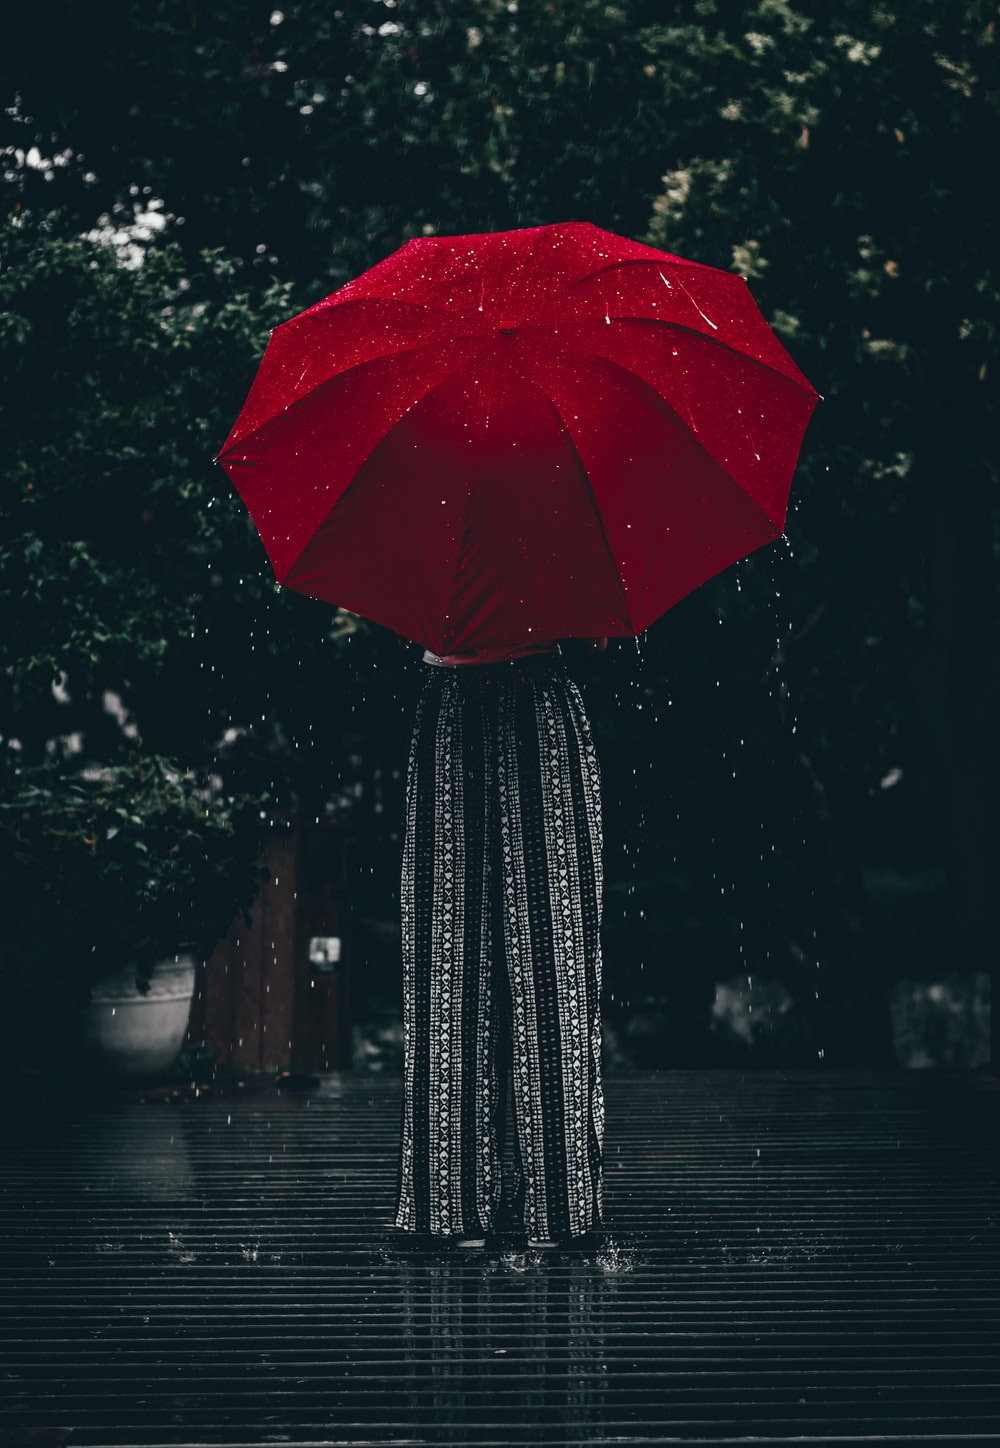 woman holding red umbrella standing near tree at daytime